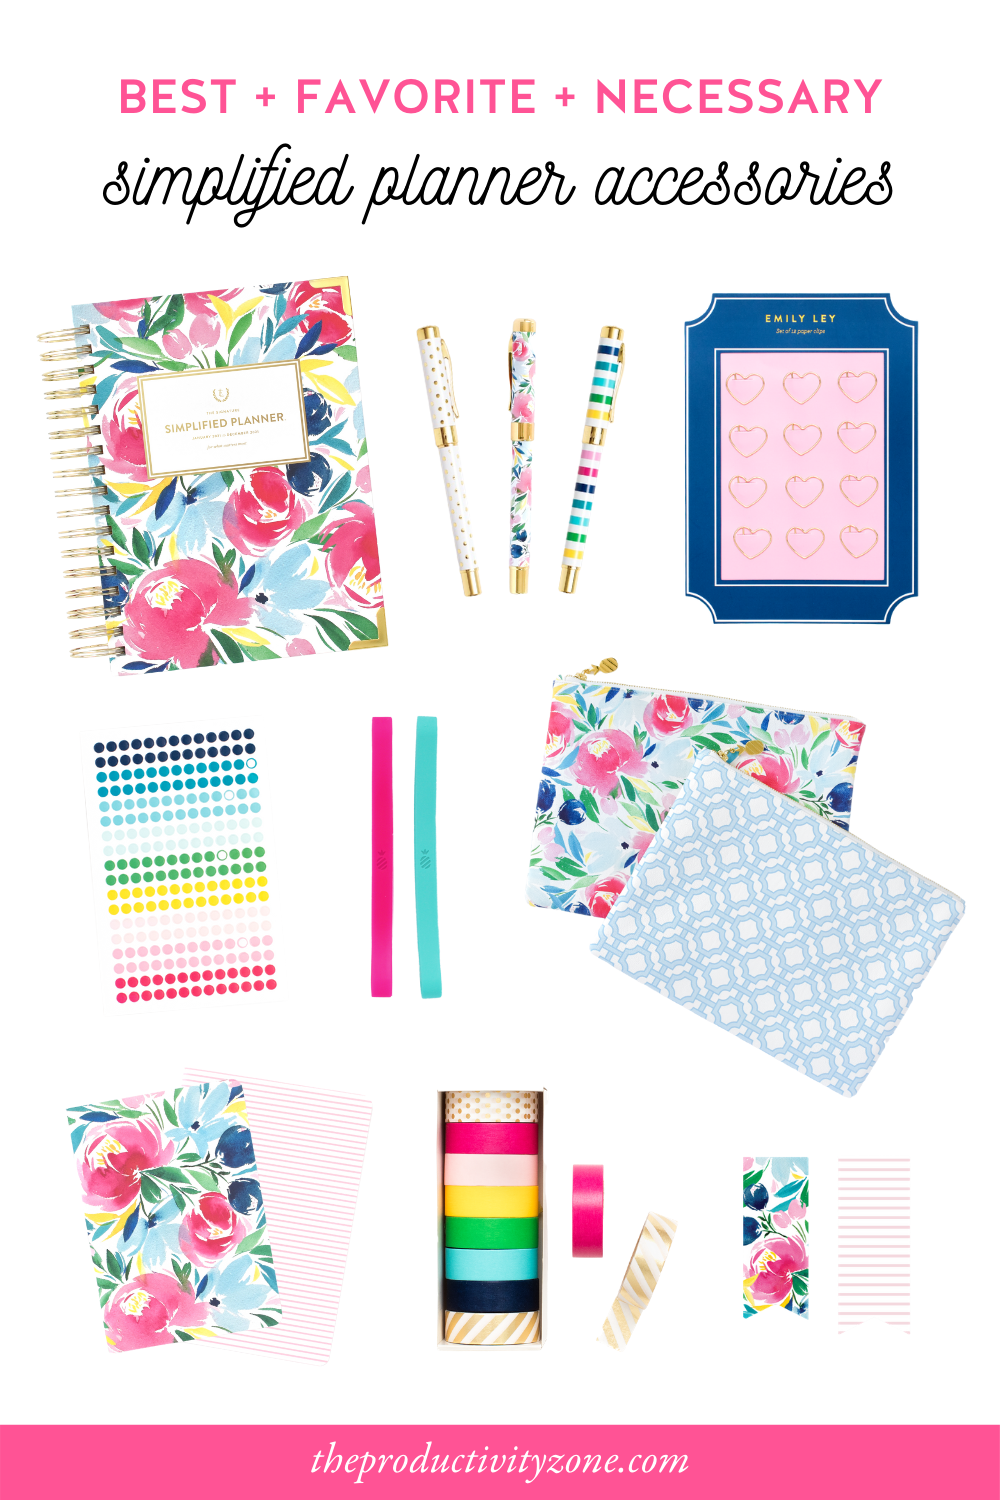 Simplified Planner accessories shopping guide including a daily planner, pens, paper clips, stickers, stretchy bands, planner pouches, mini notebooks, washi tape, and page markers